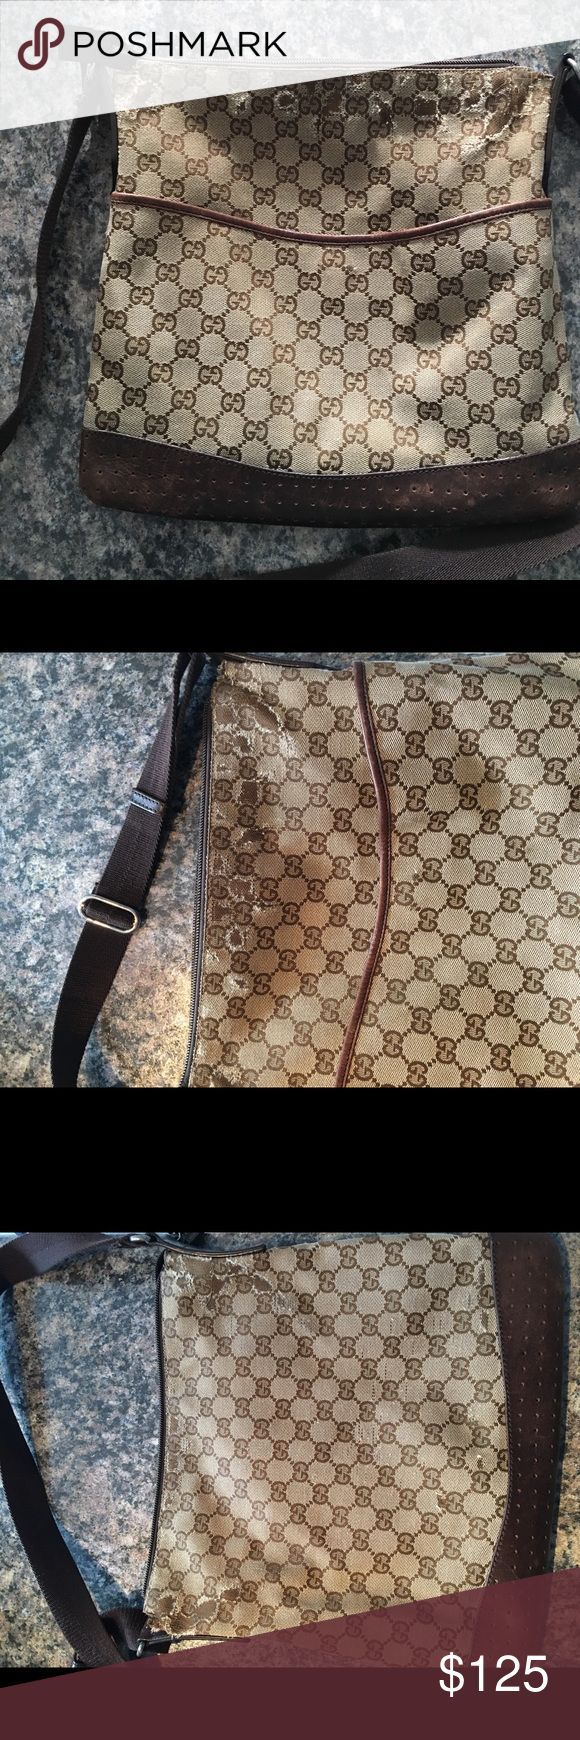 Authentic GUCCI messanger bag. Authentic Gucci messenger bag WORN on the top see pictures! Gucci Bags